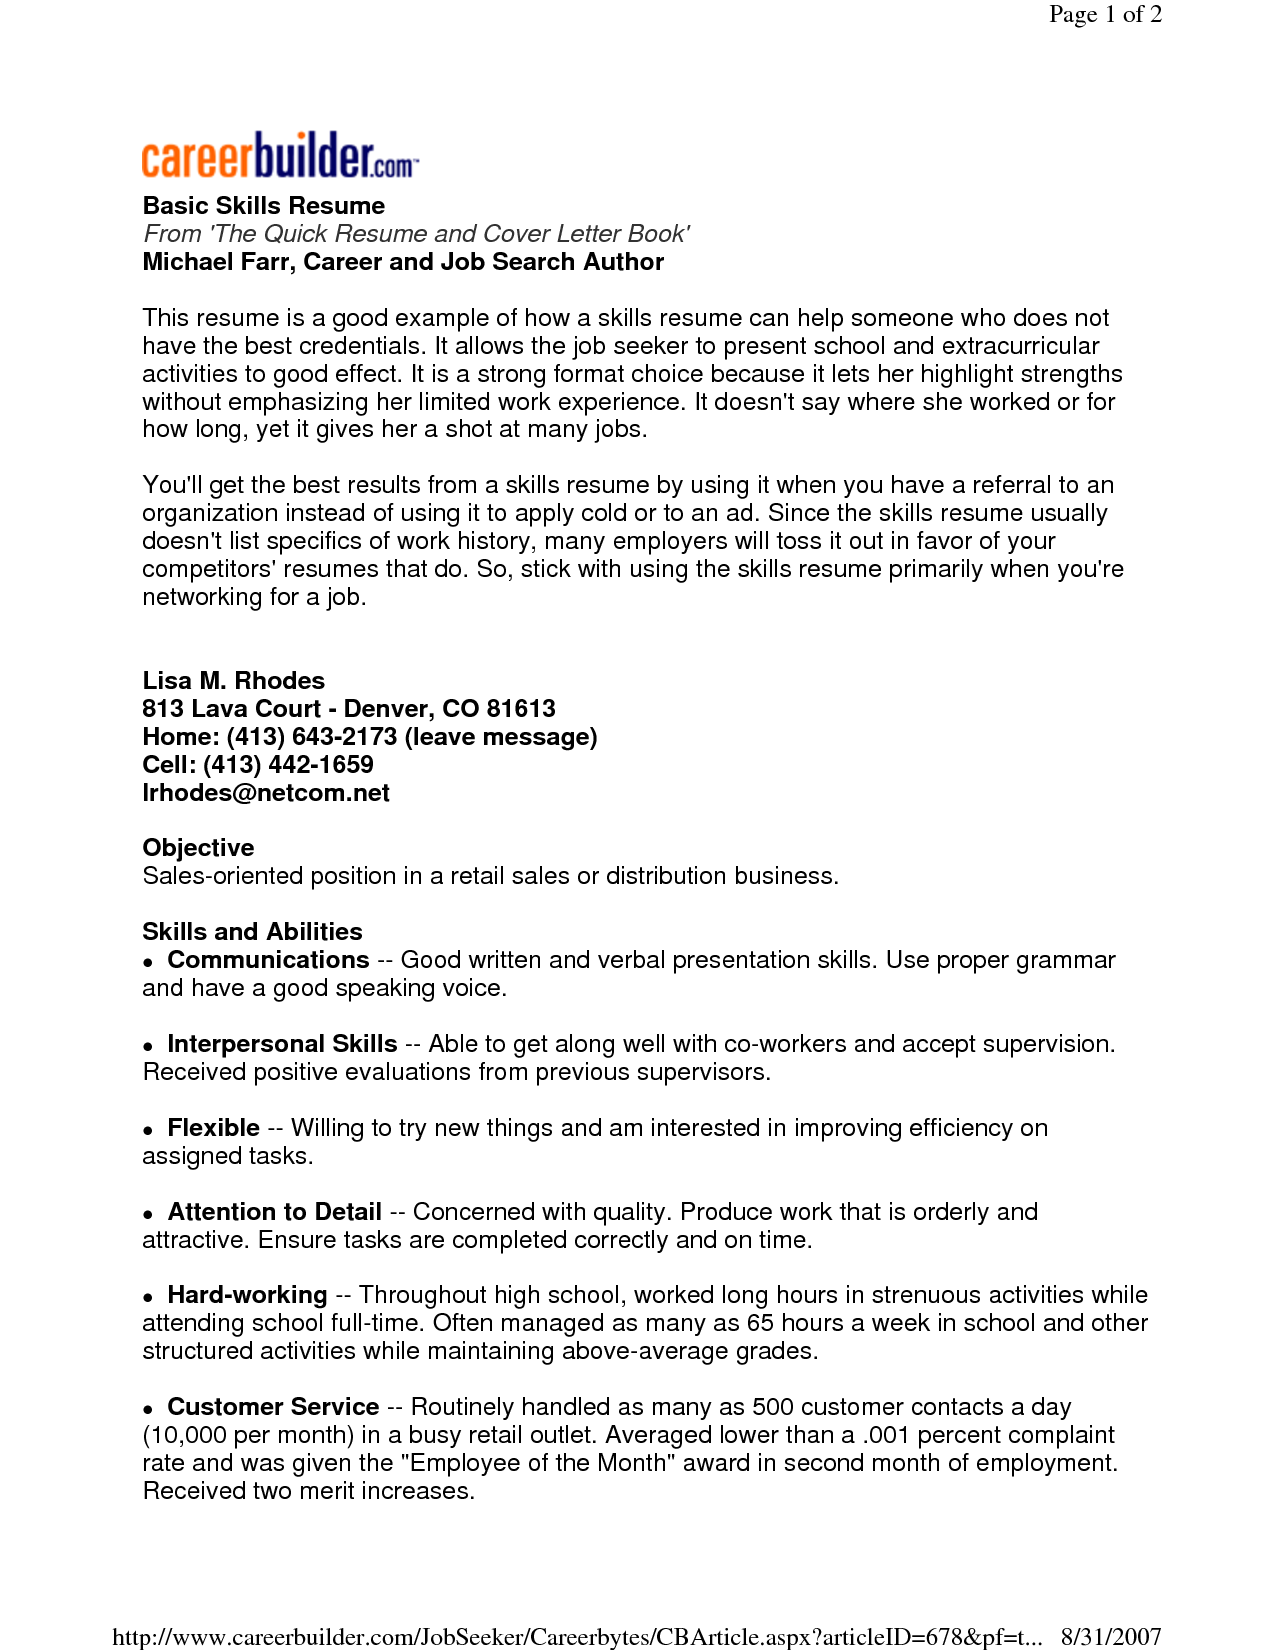 Areas Of Expertise Resume Examples Interesting Basic Resume Examples Skills  Httpwww.resumecareerbasic .